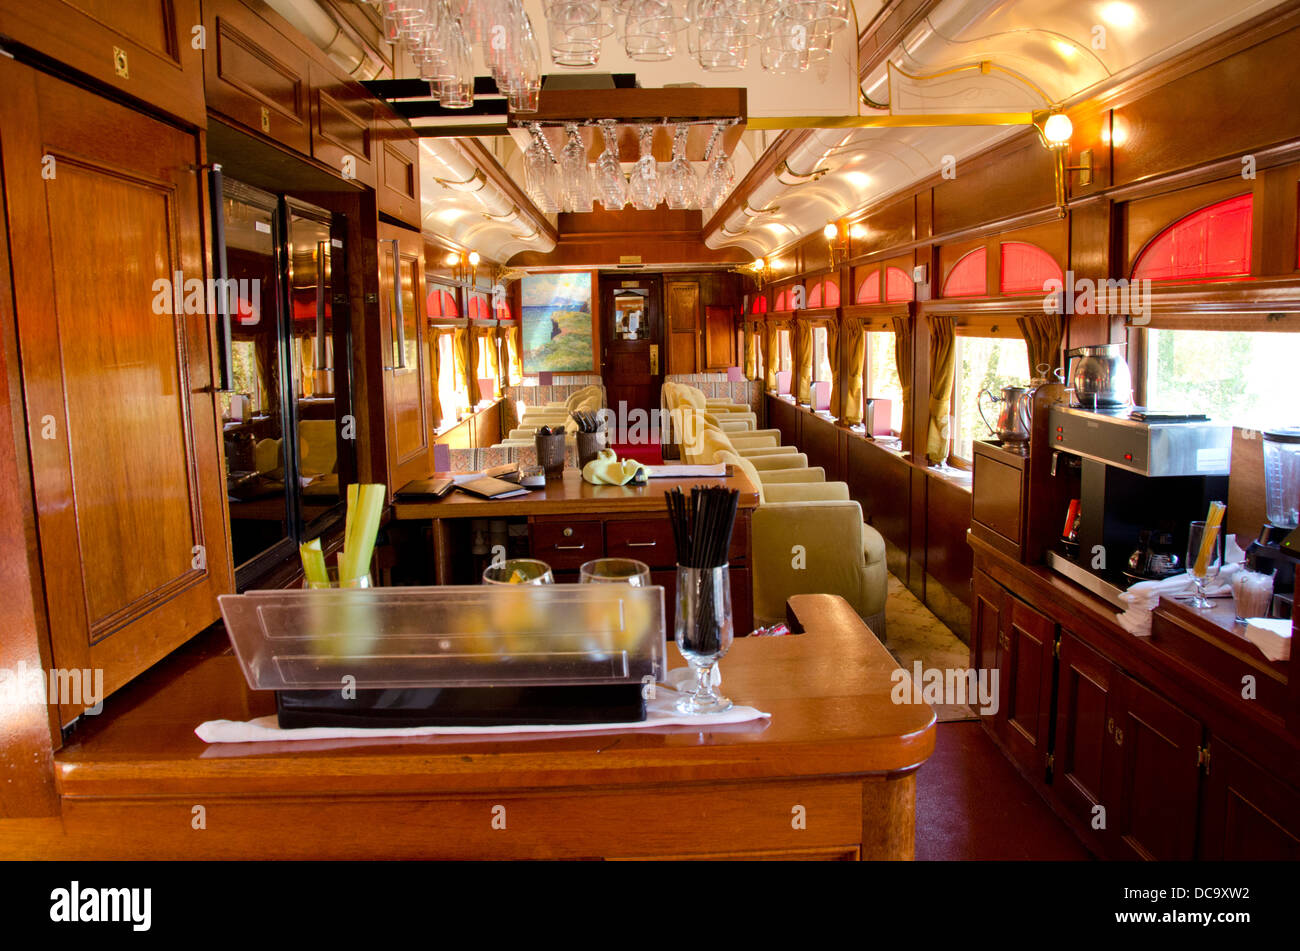 california napa valley wine train historic vintage rail car stock photo 59225630 alamy. Black Bedroom Furniture Sets. Home Design Ideas